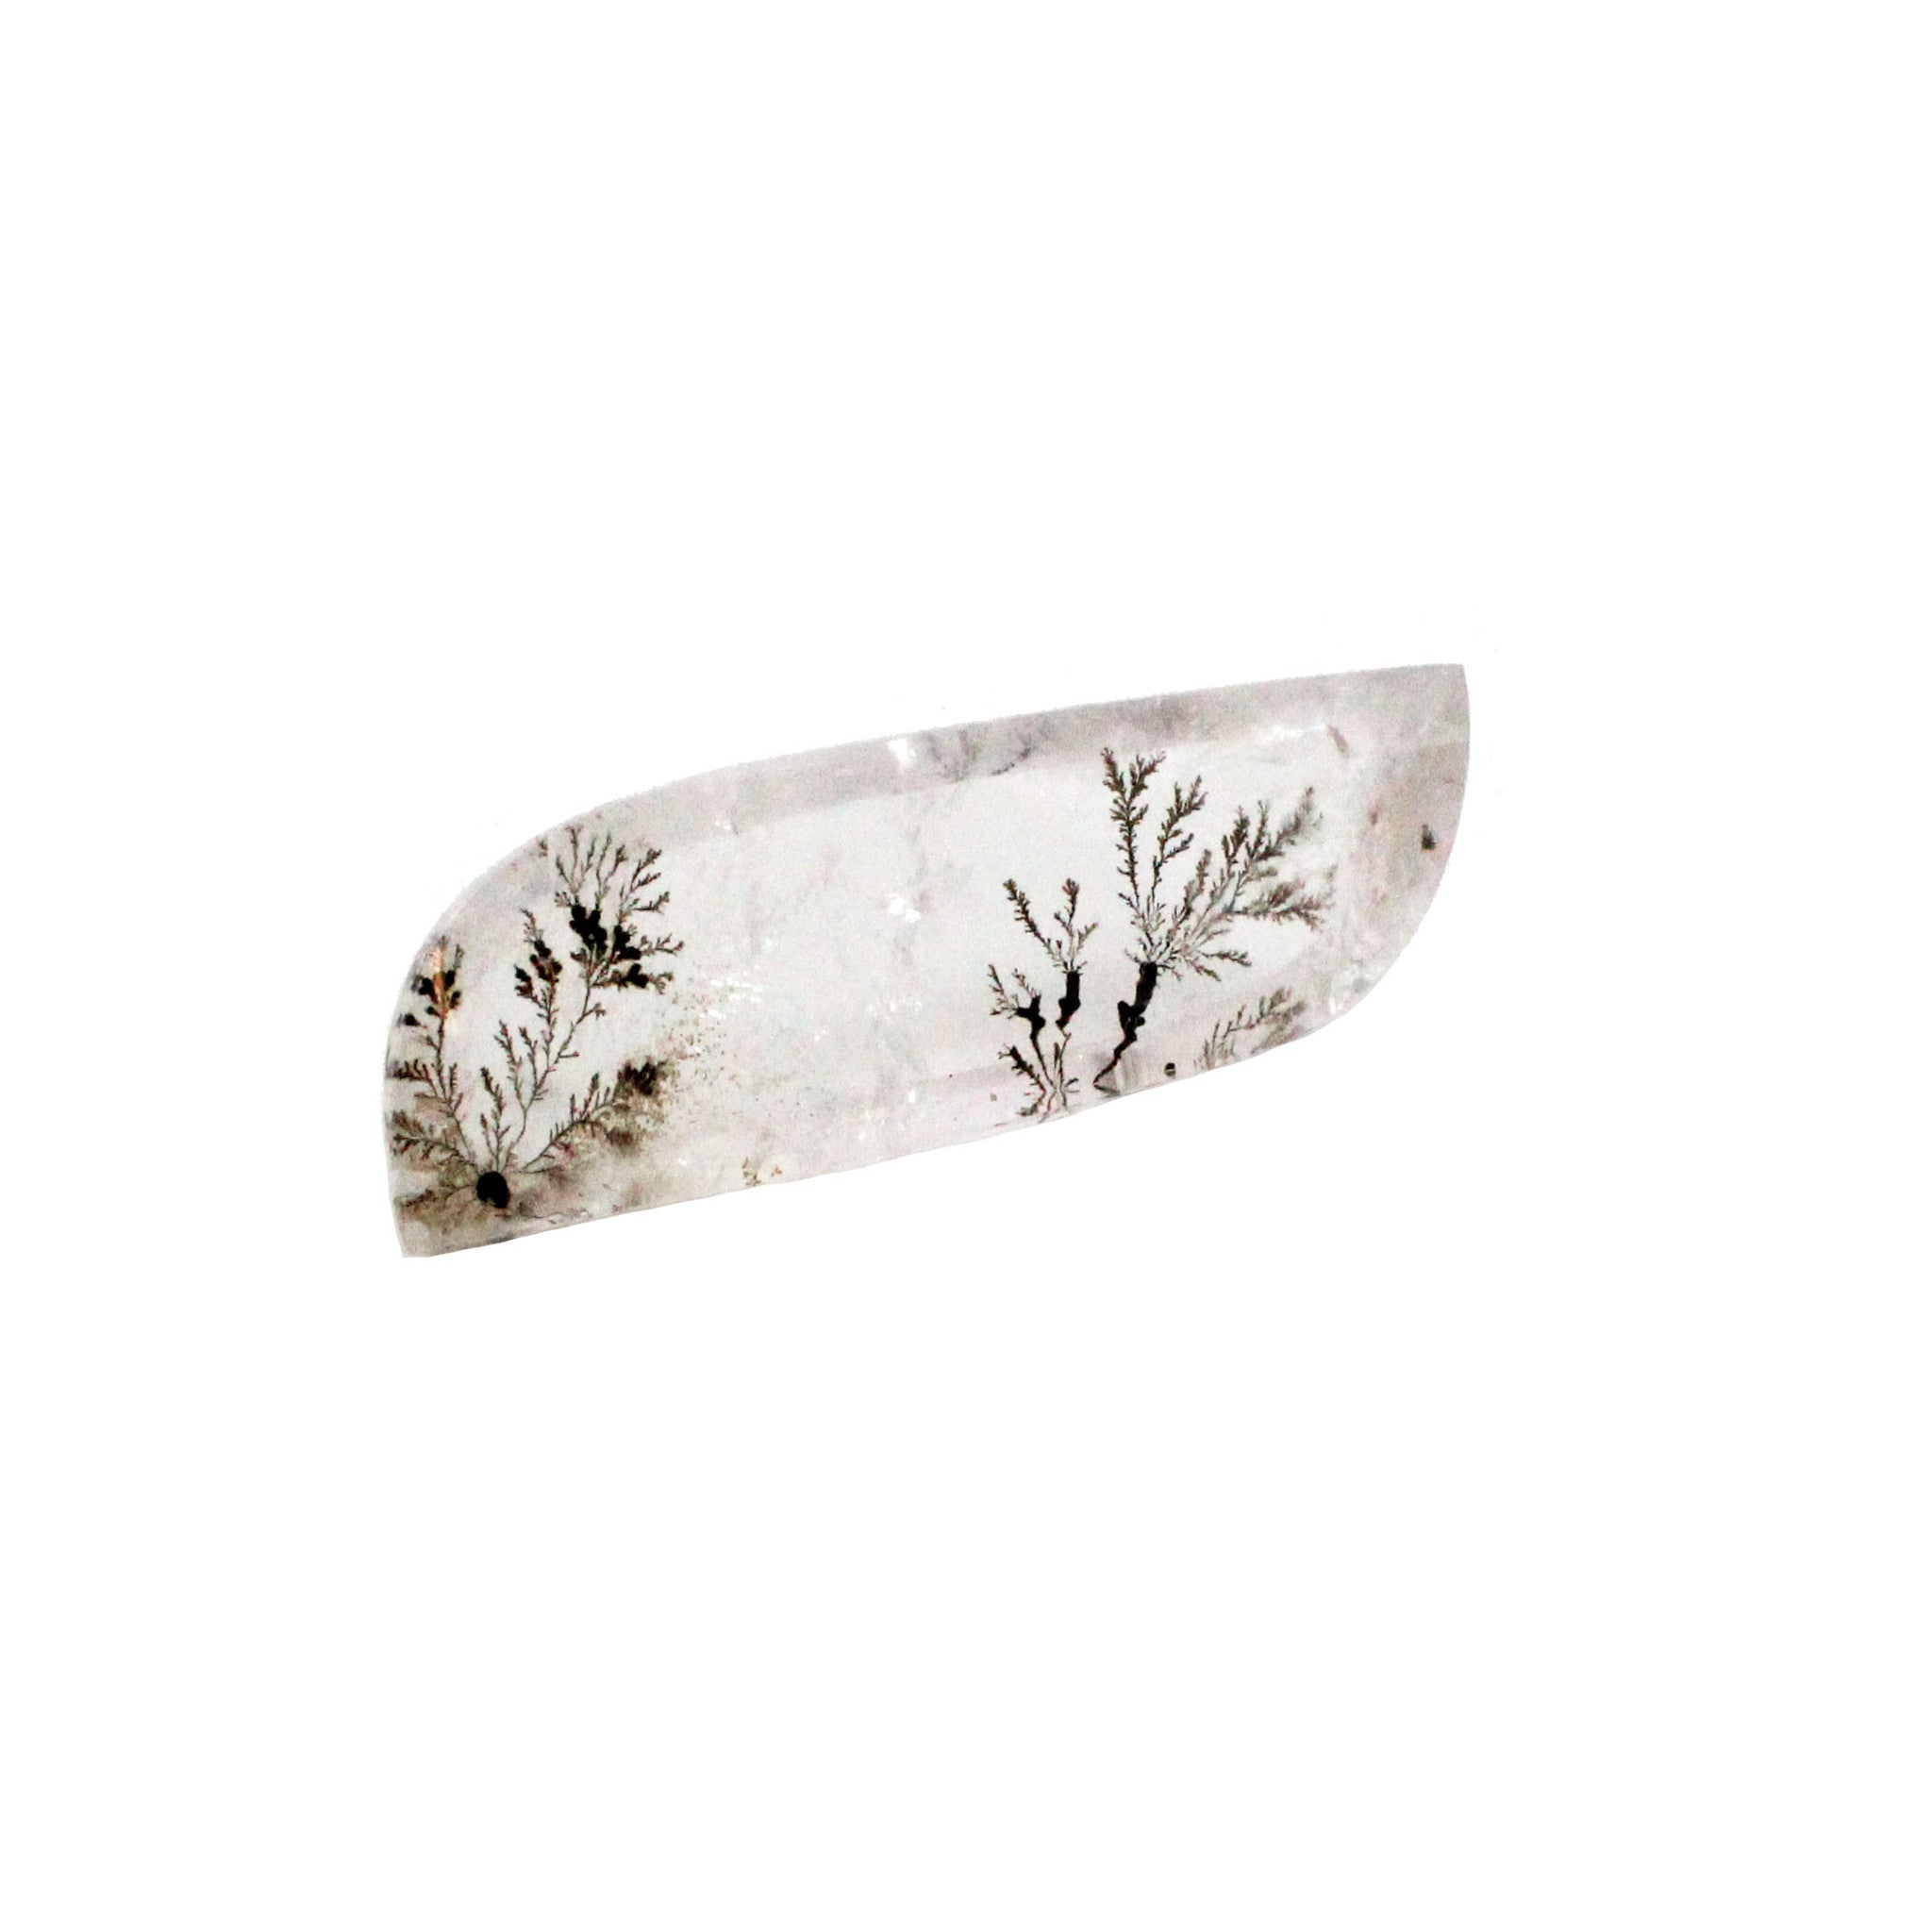 Dendritic Quartz fancy buff top cut cabochon 58.79 carat gemstone - Make your own custom jewelry - Sarah Hughes - 3